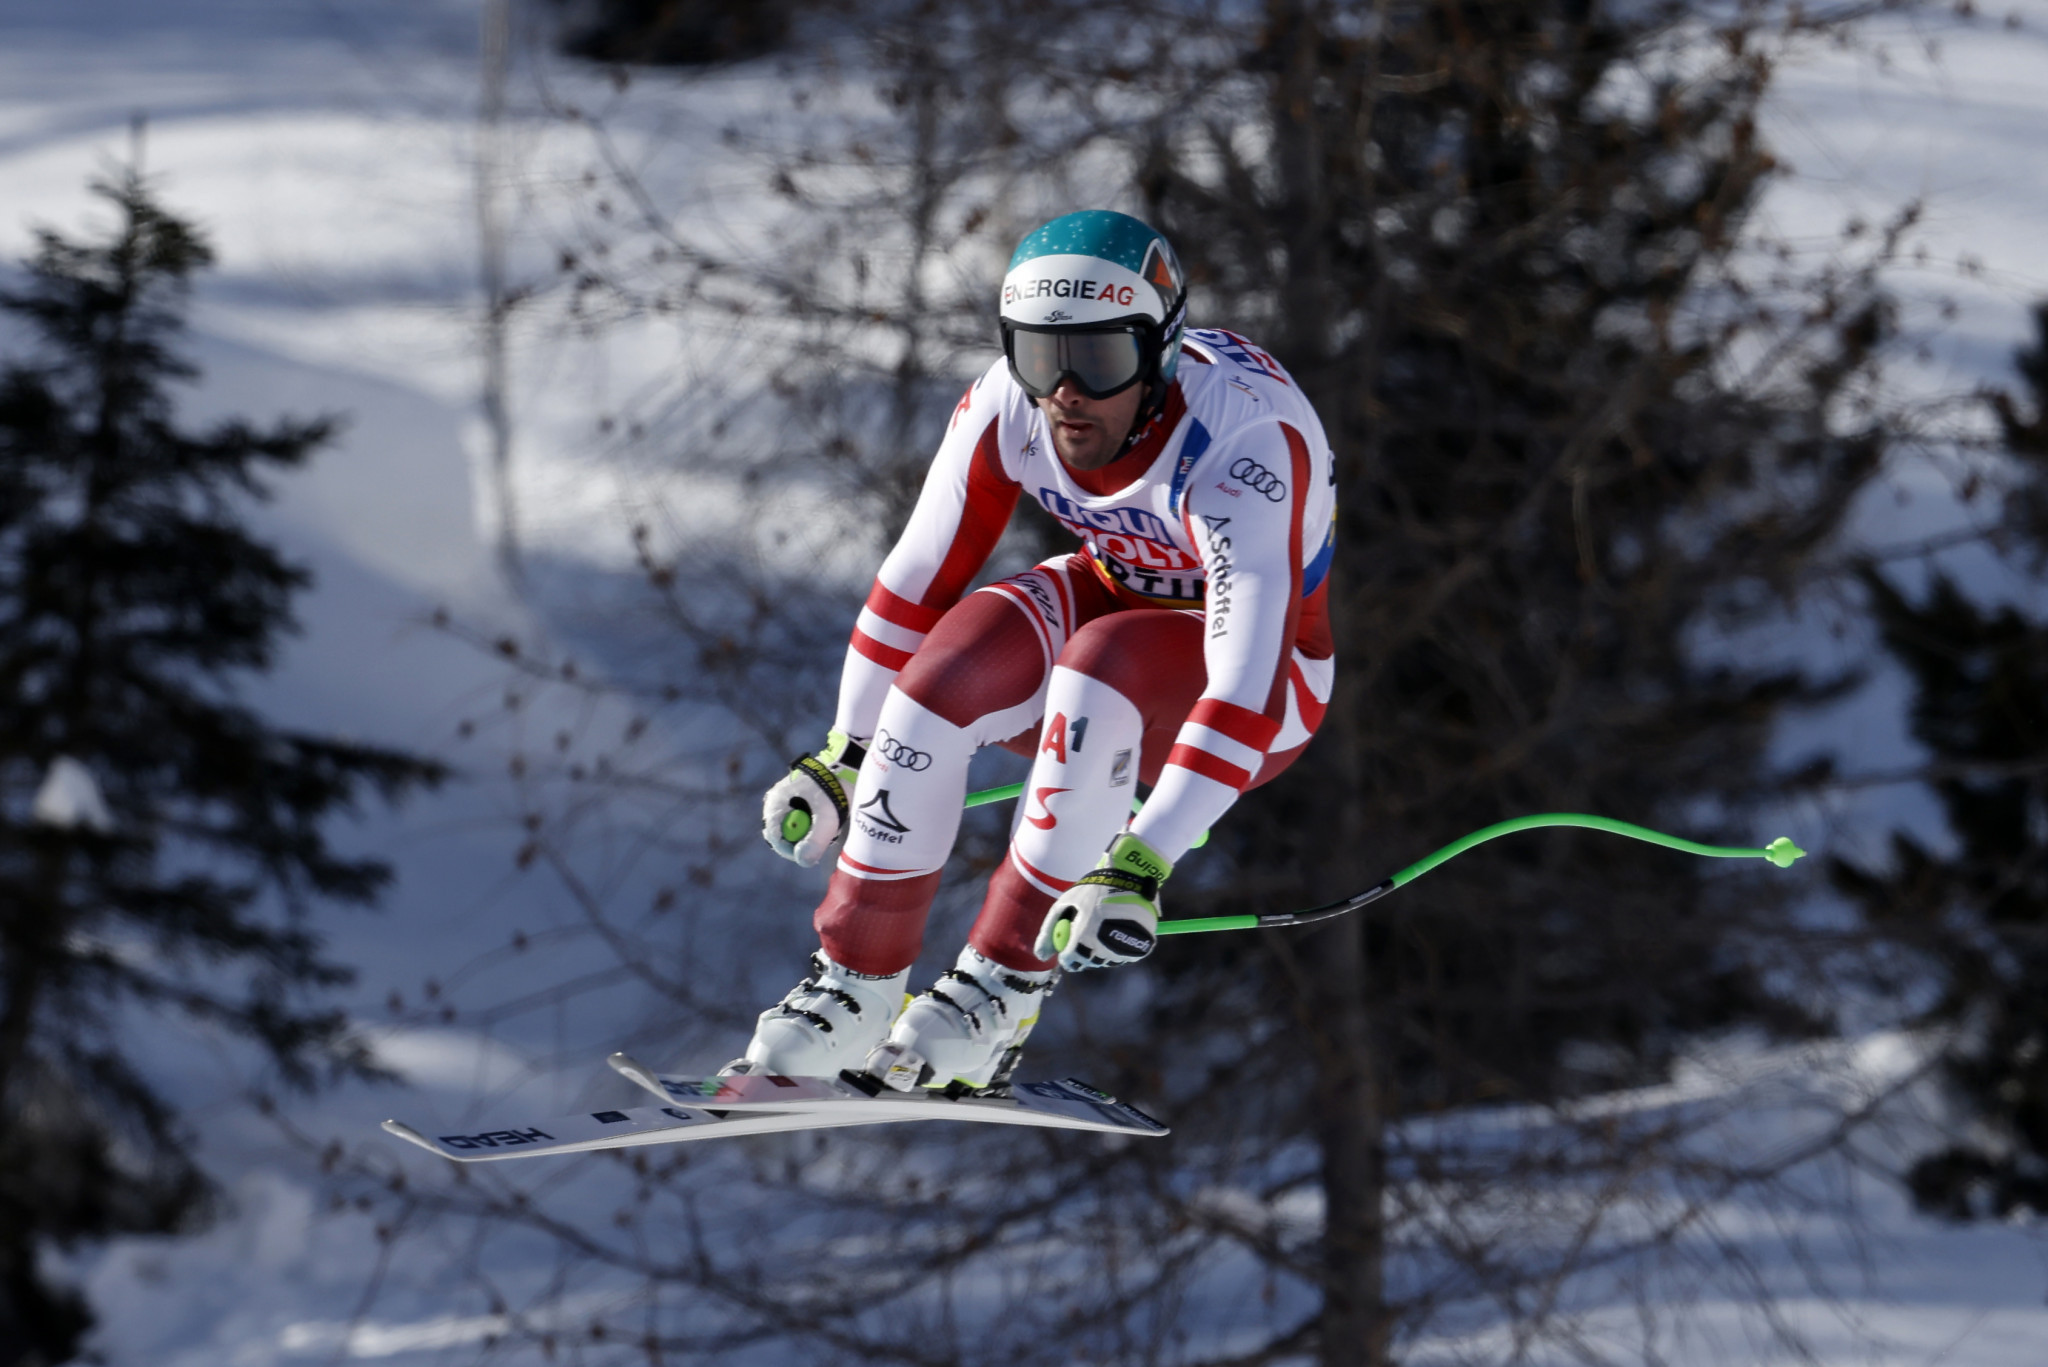 Kriechmayr earns rare double with downhill triumph at FIS Alpine World Ski Championships